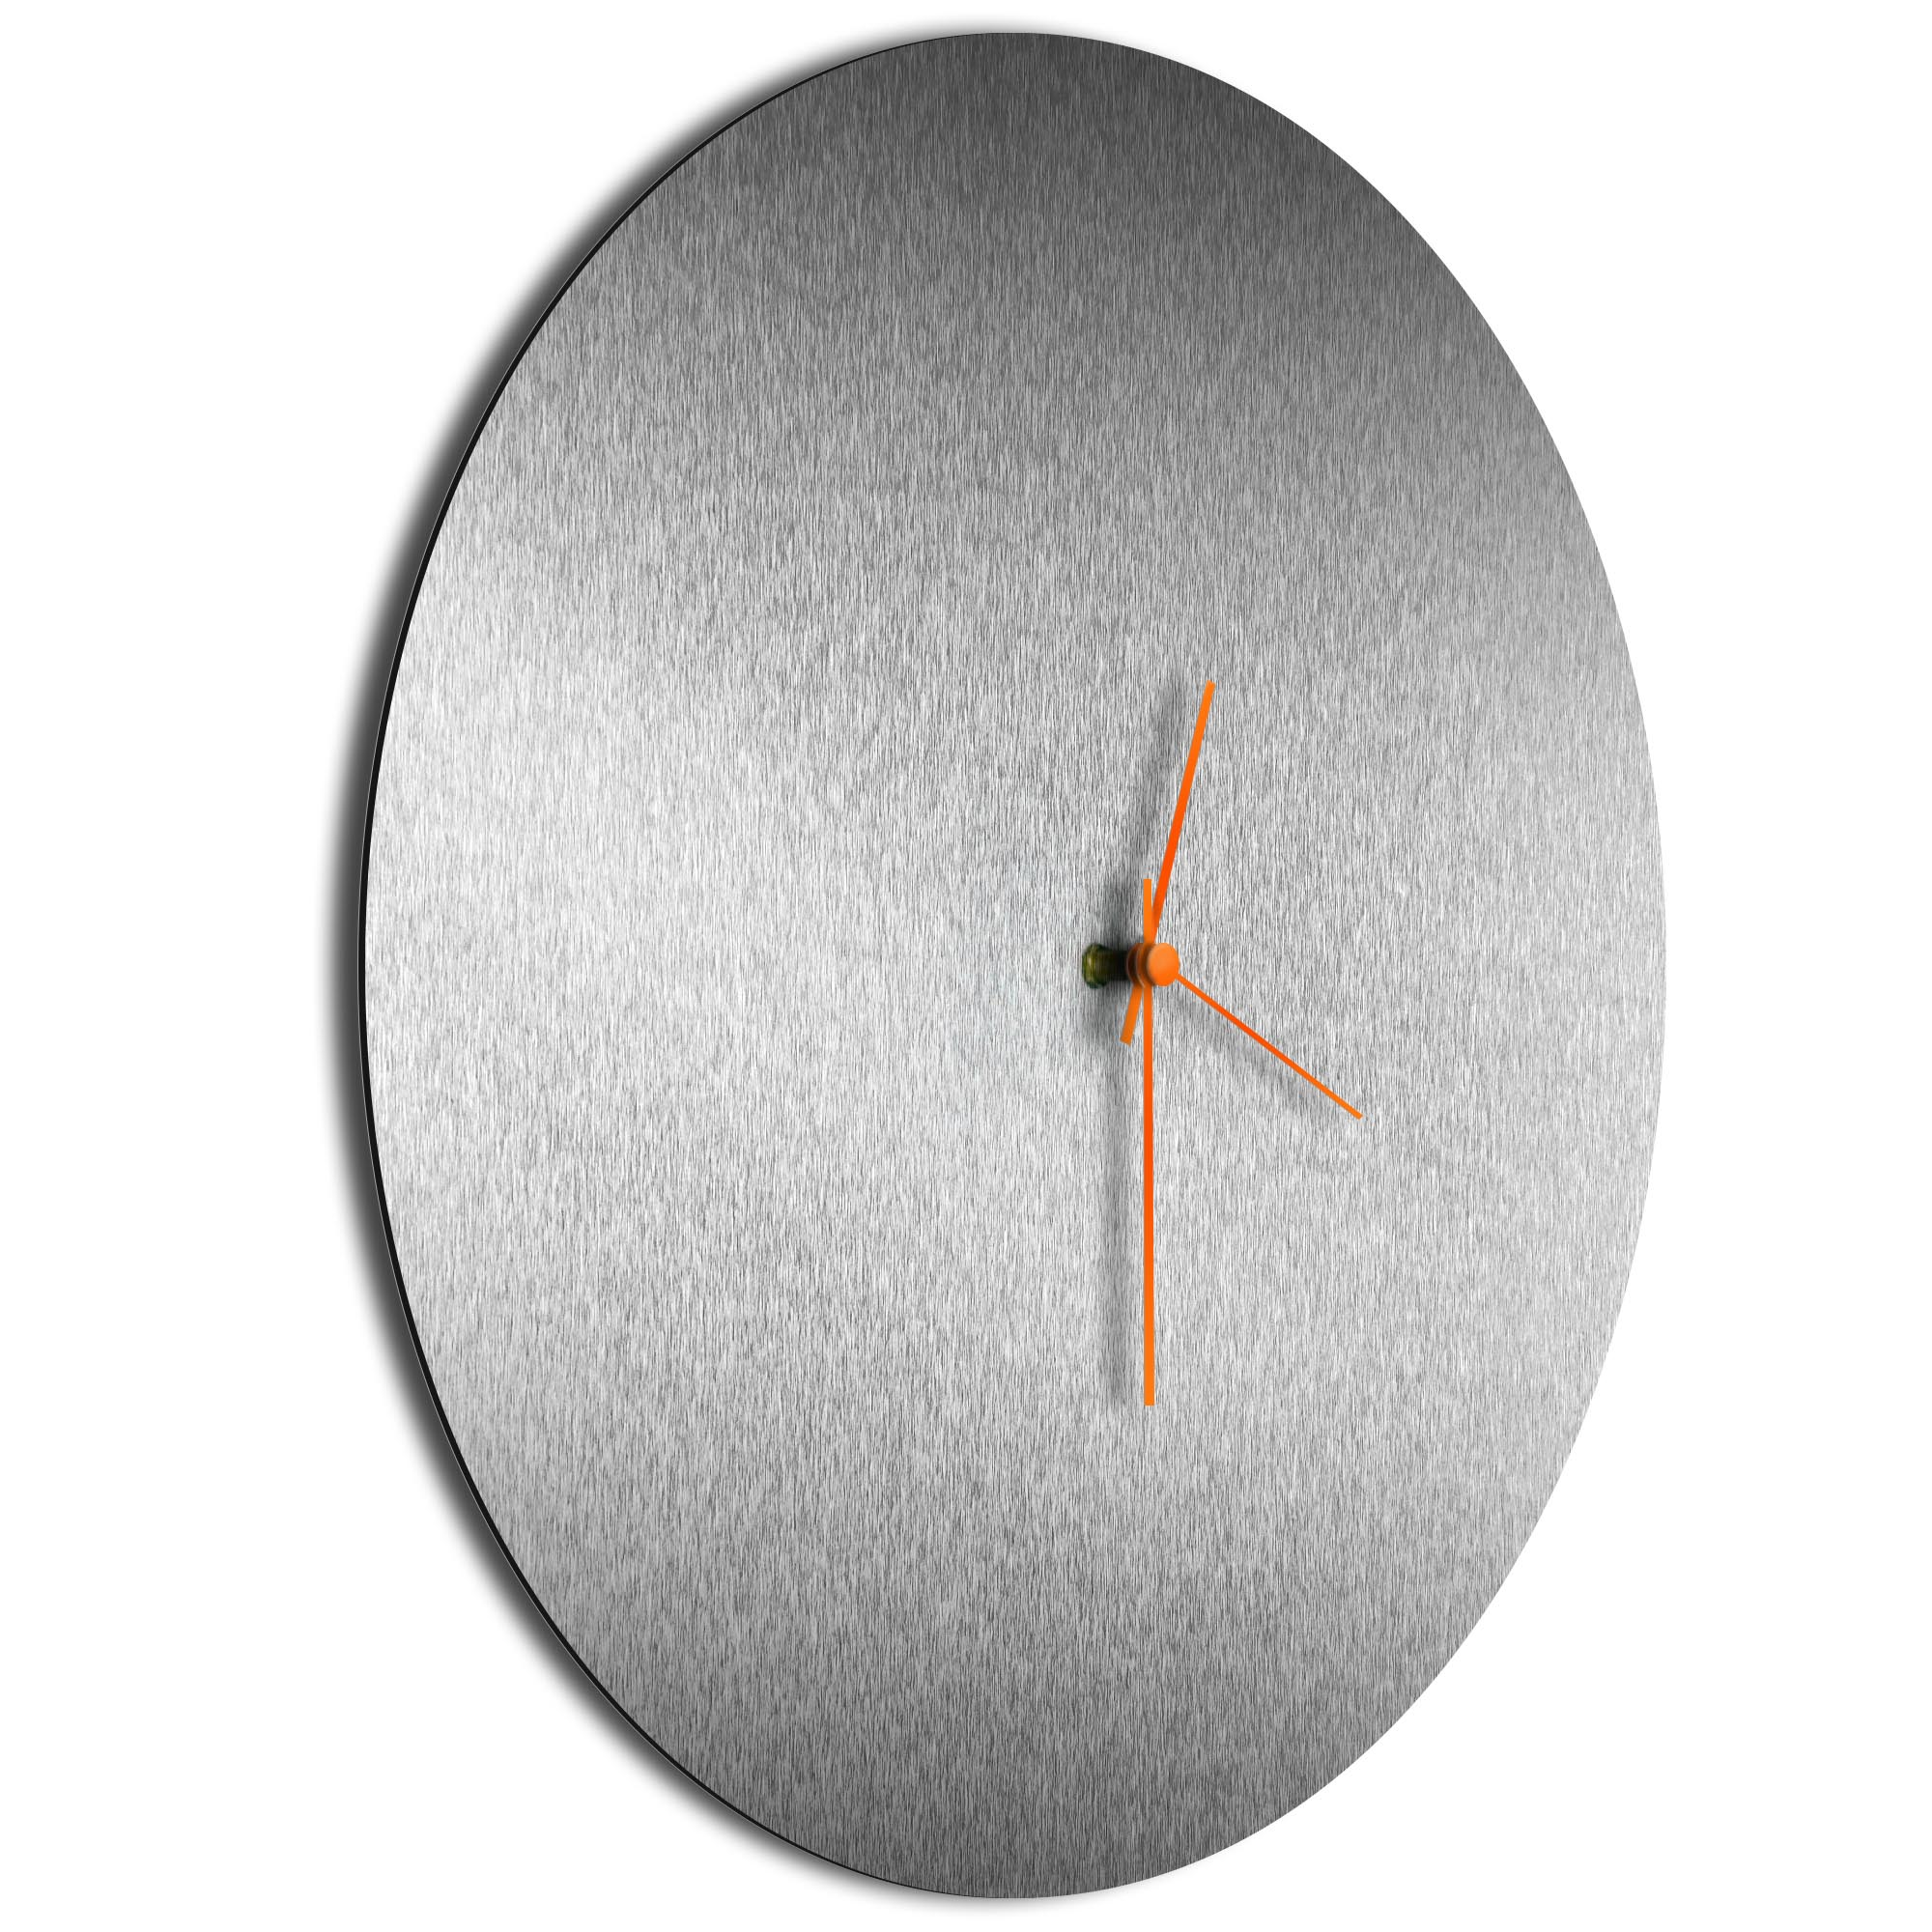 Silversmith Circle Clock Orange - Image 2